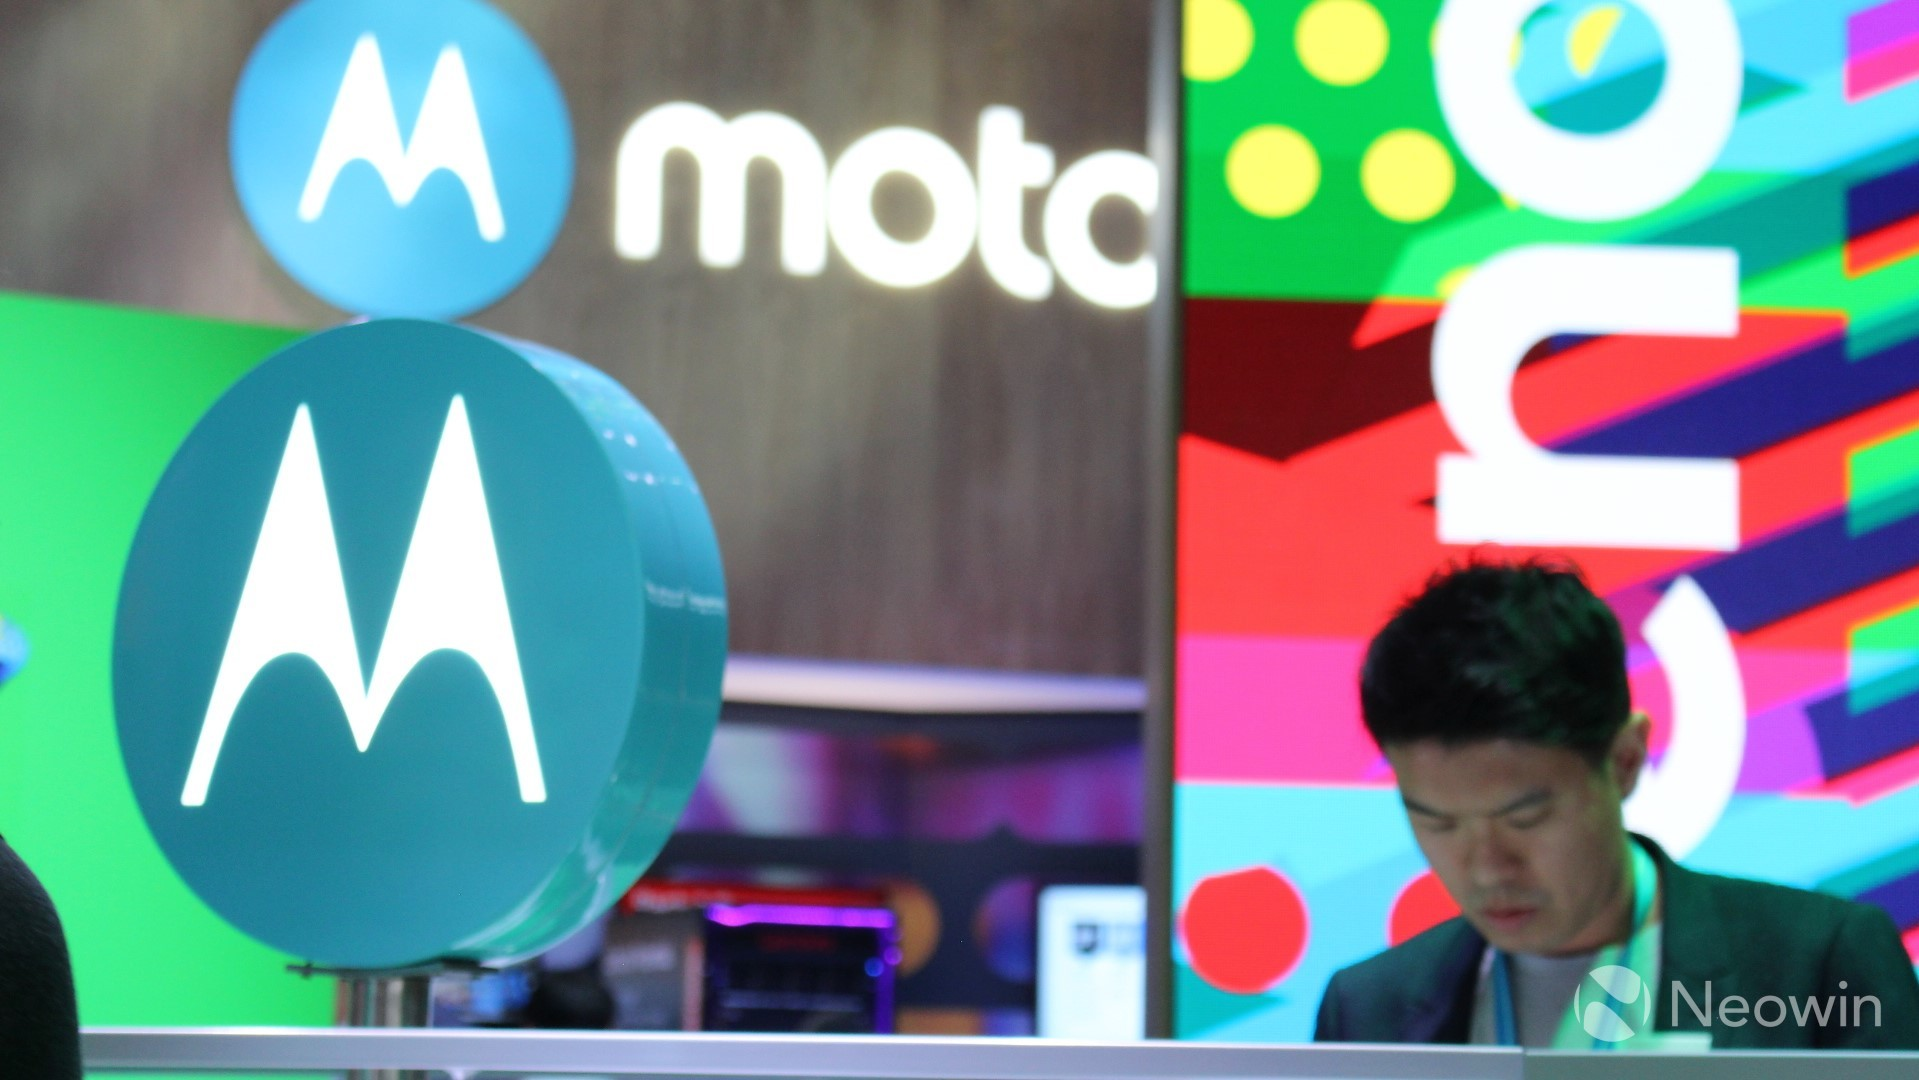 Motorola Moto Android tablet leaks with 'Productivity Mode'